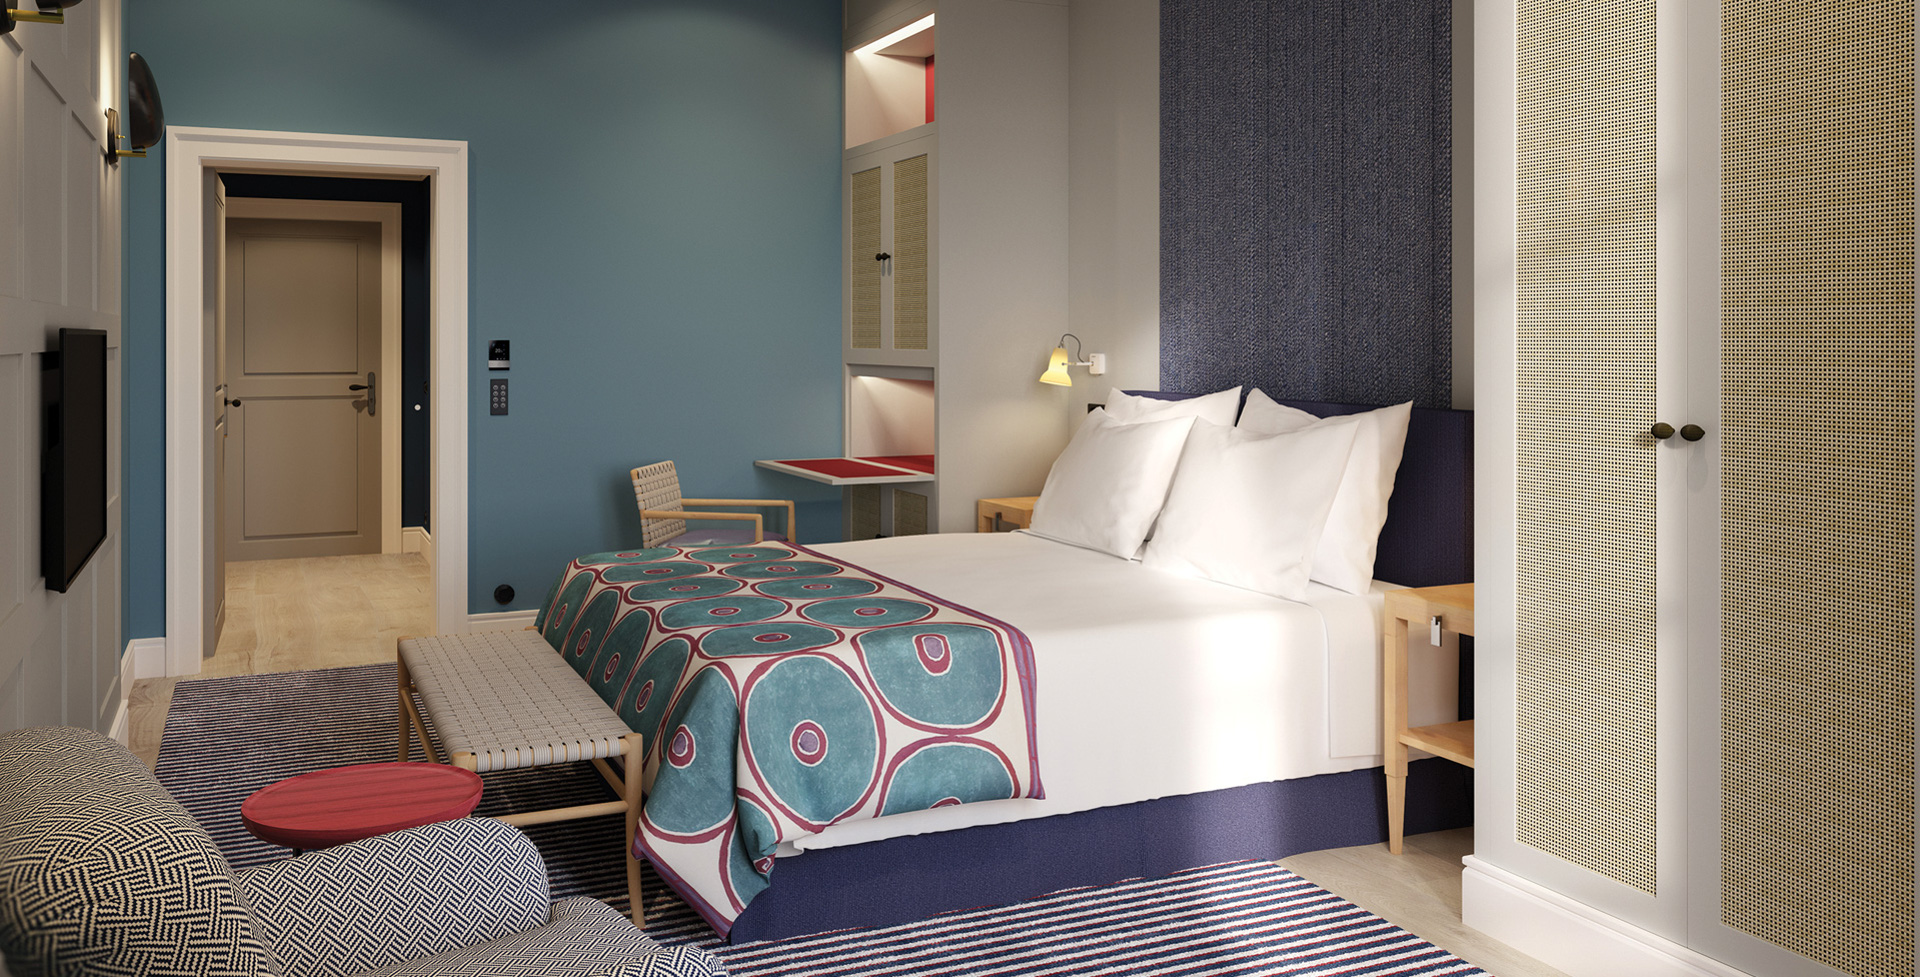 Rooms contracted by CPE Conferences at the Bairro Alto Hotel for the Lisbon Conference